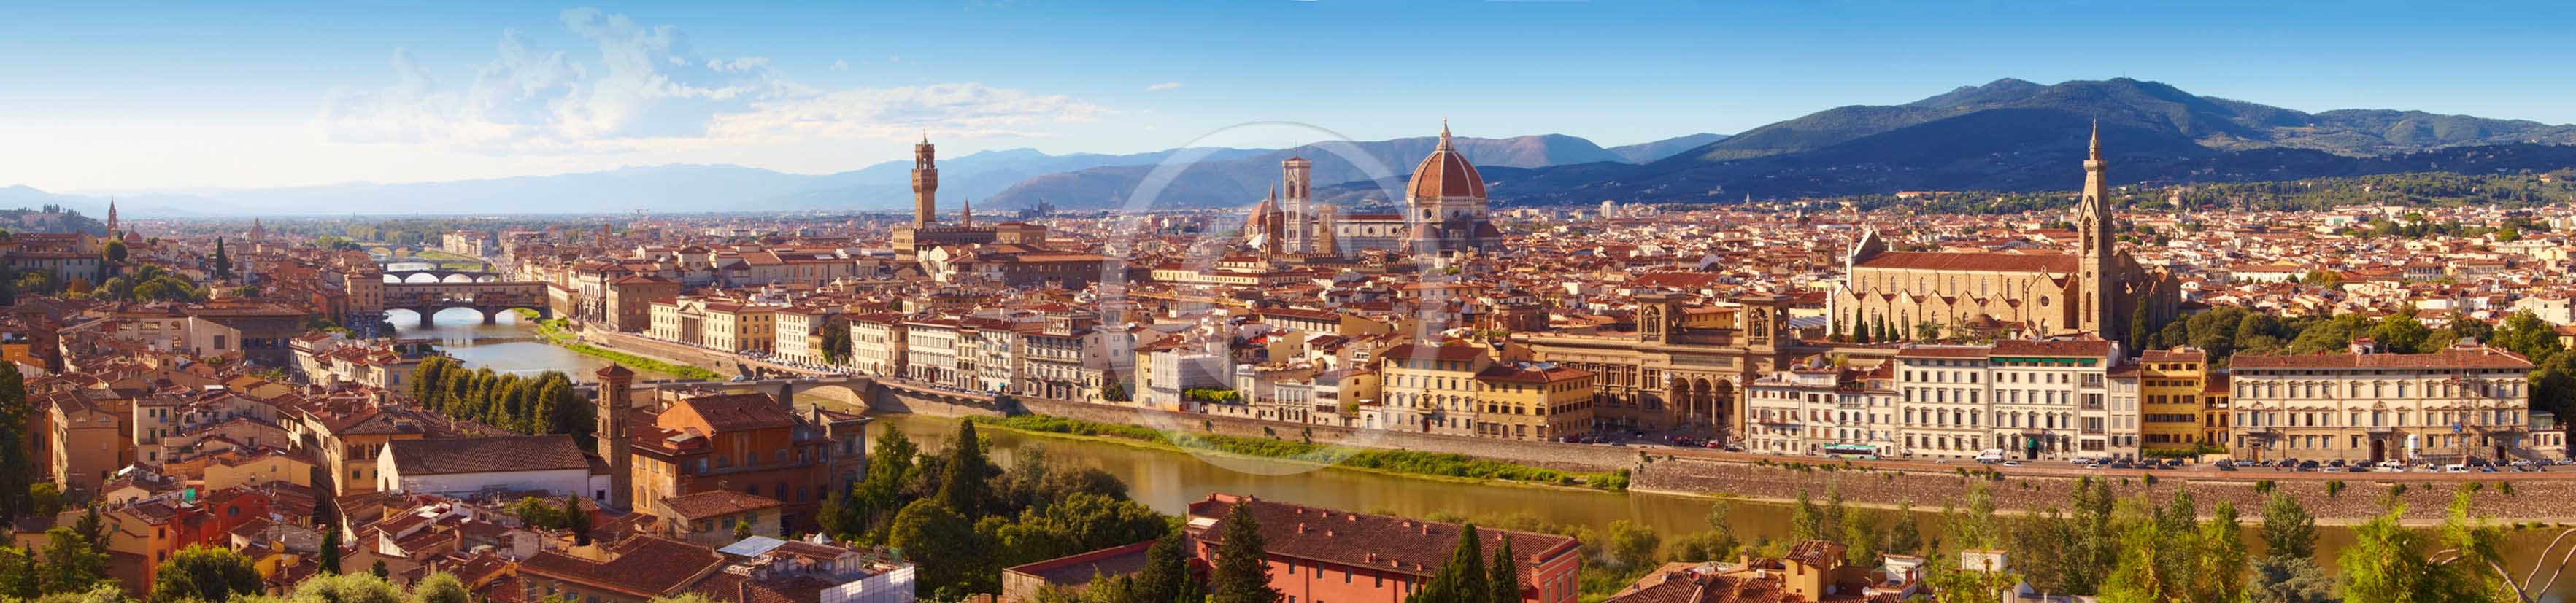 2011 - Panoramic view of the town of Florence.